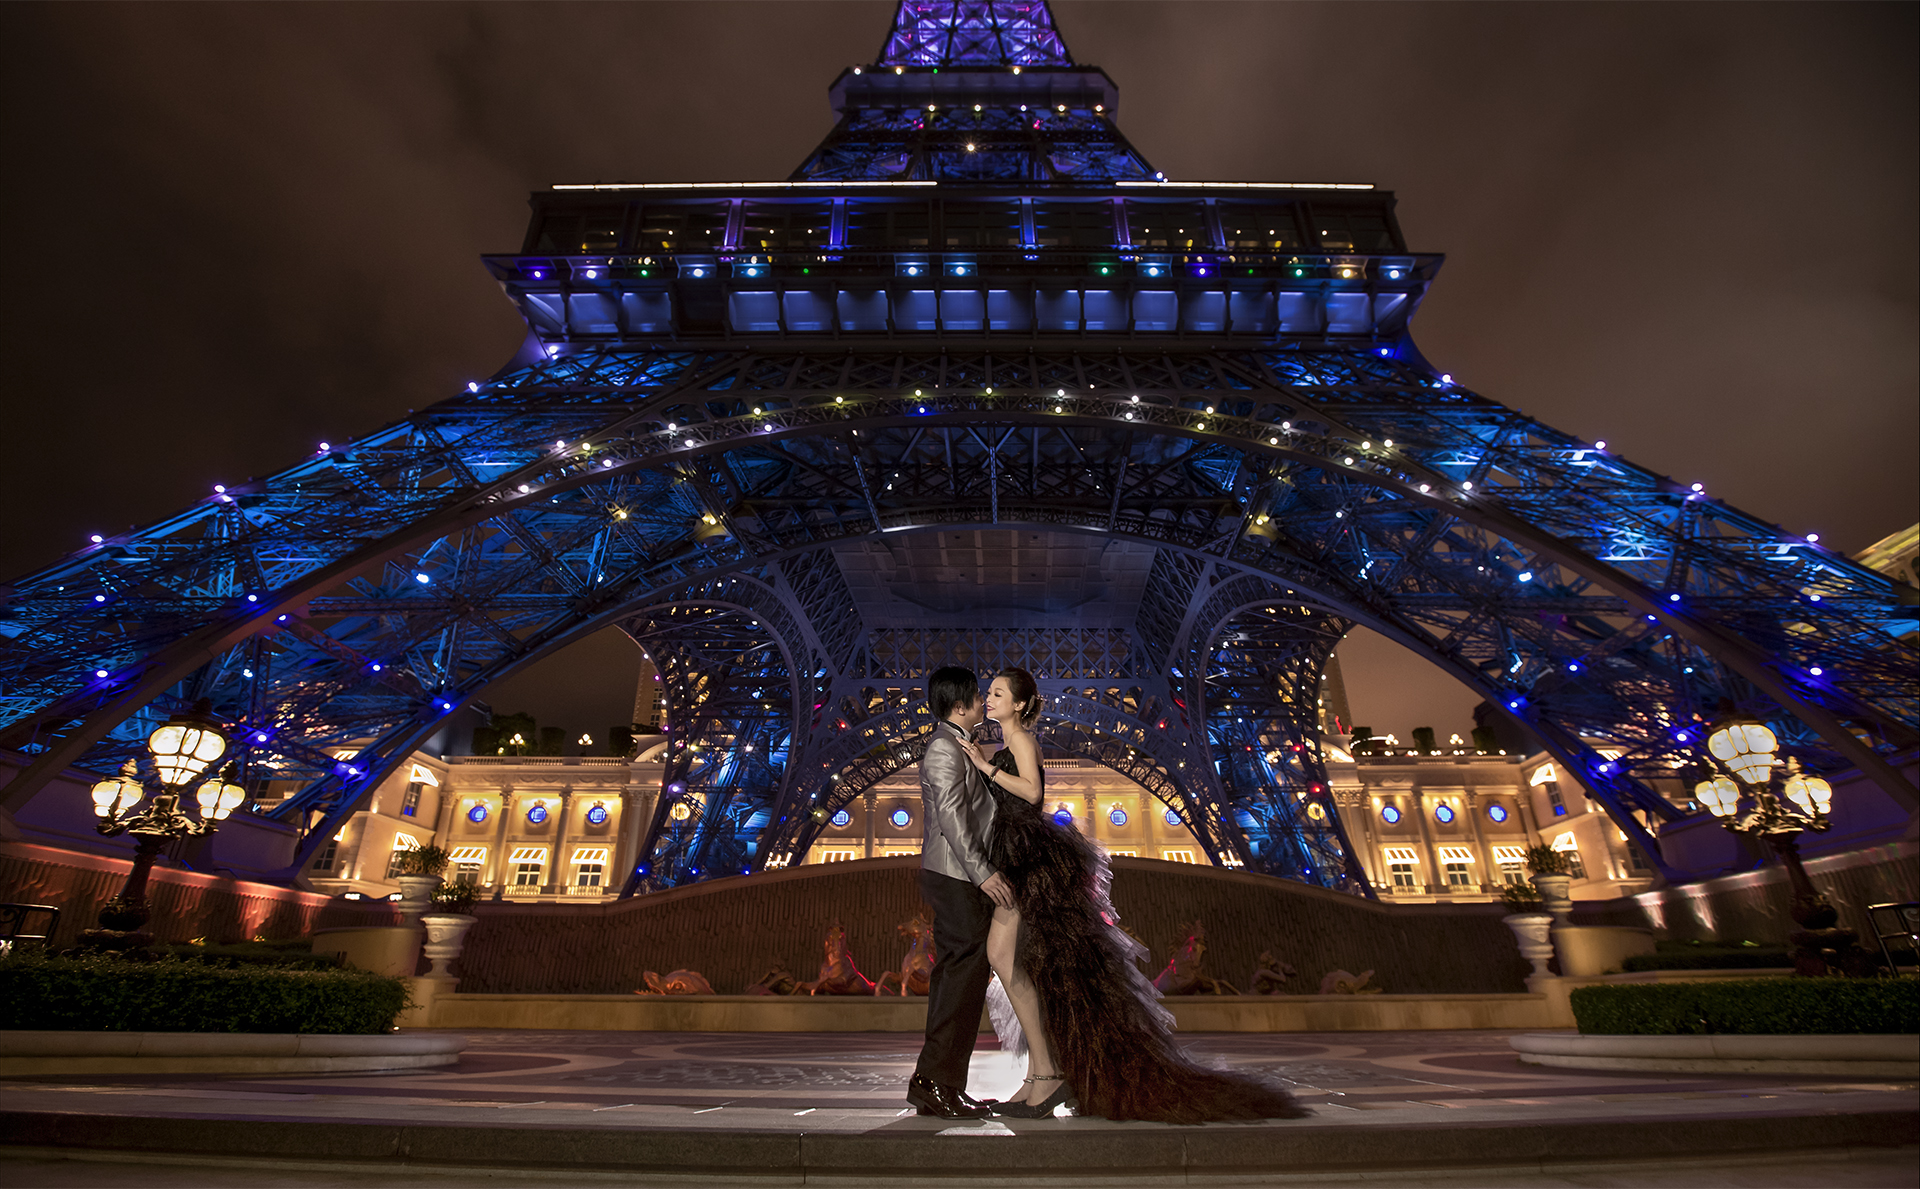 Macau Prewedding - Parisian Eiffel Tower